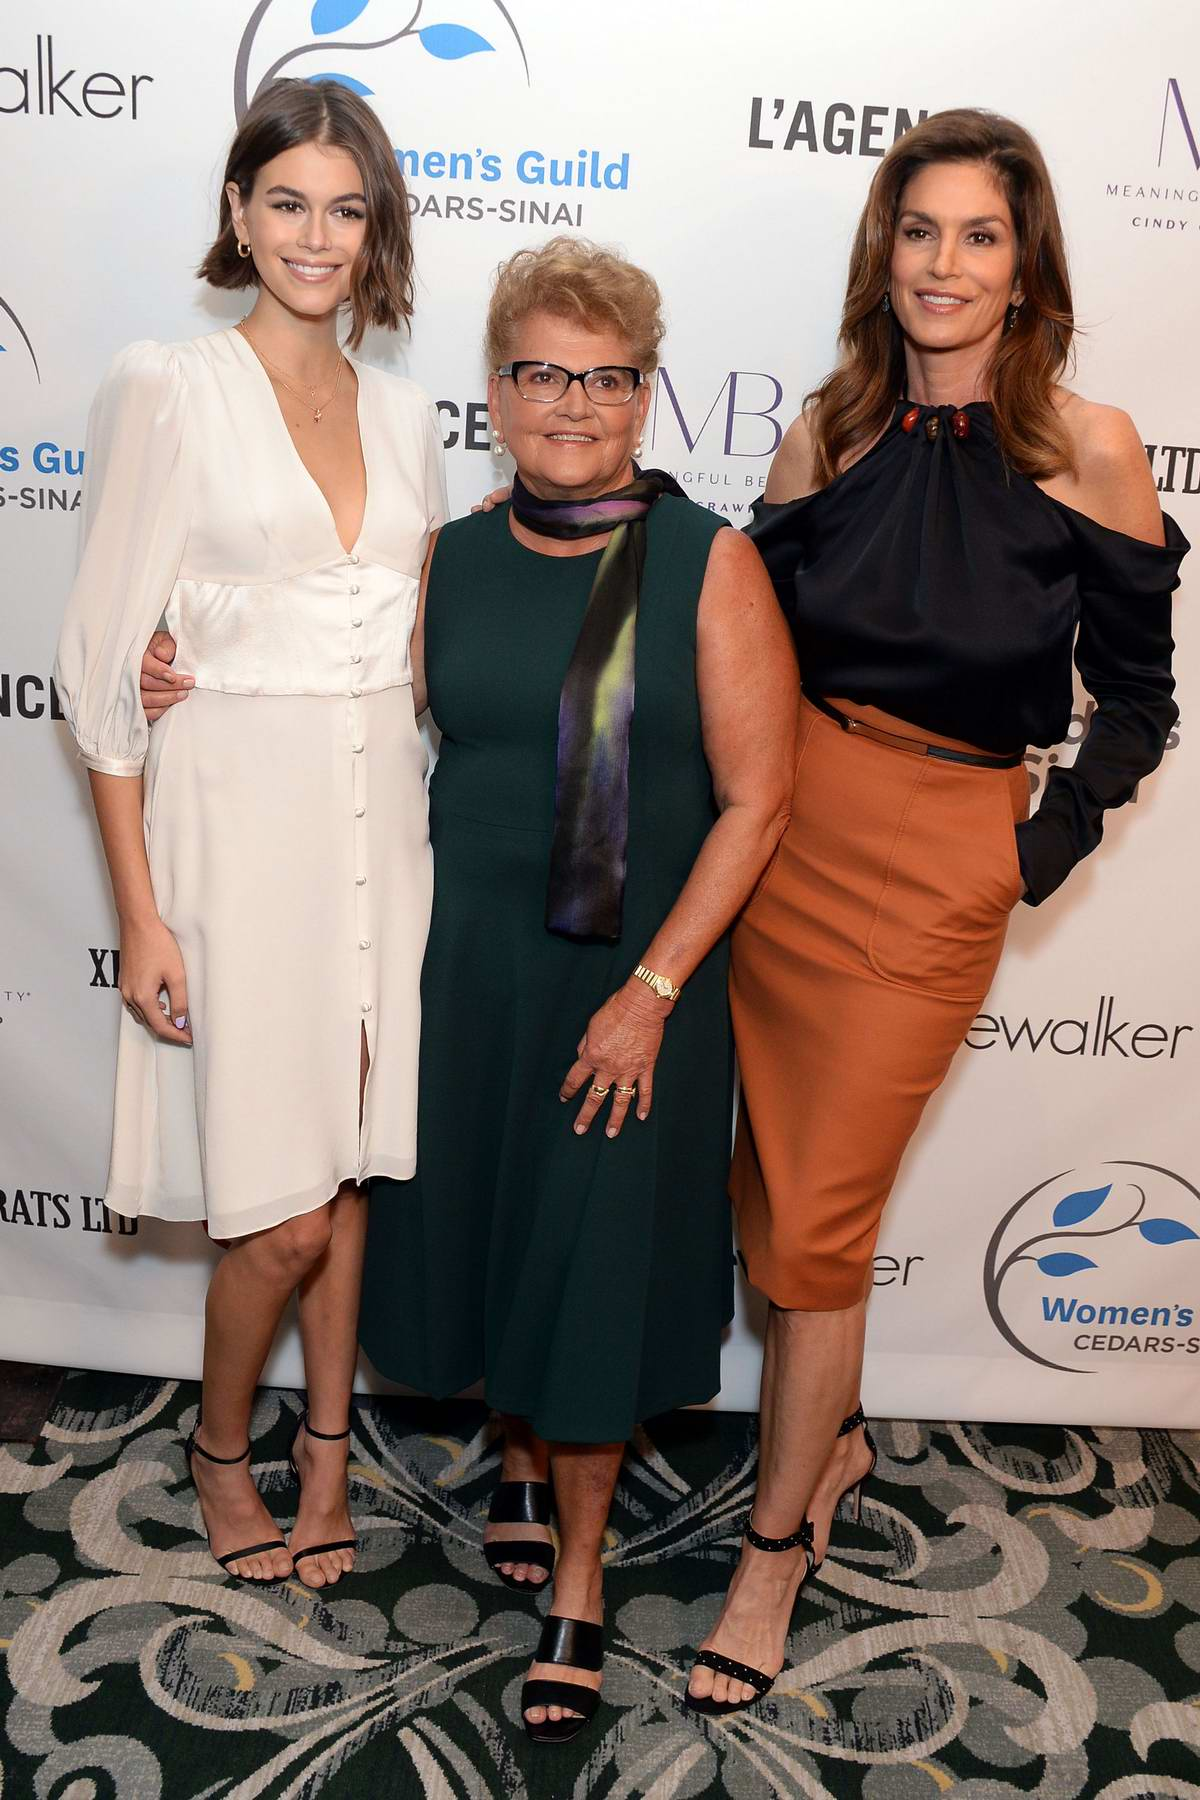 Kaia Gerber and Cindy Crawford attend Women's Guild Cedar's-Sinai Luncheon at Beverly Wilshire in Los Angeles